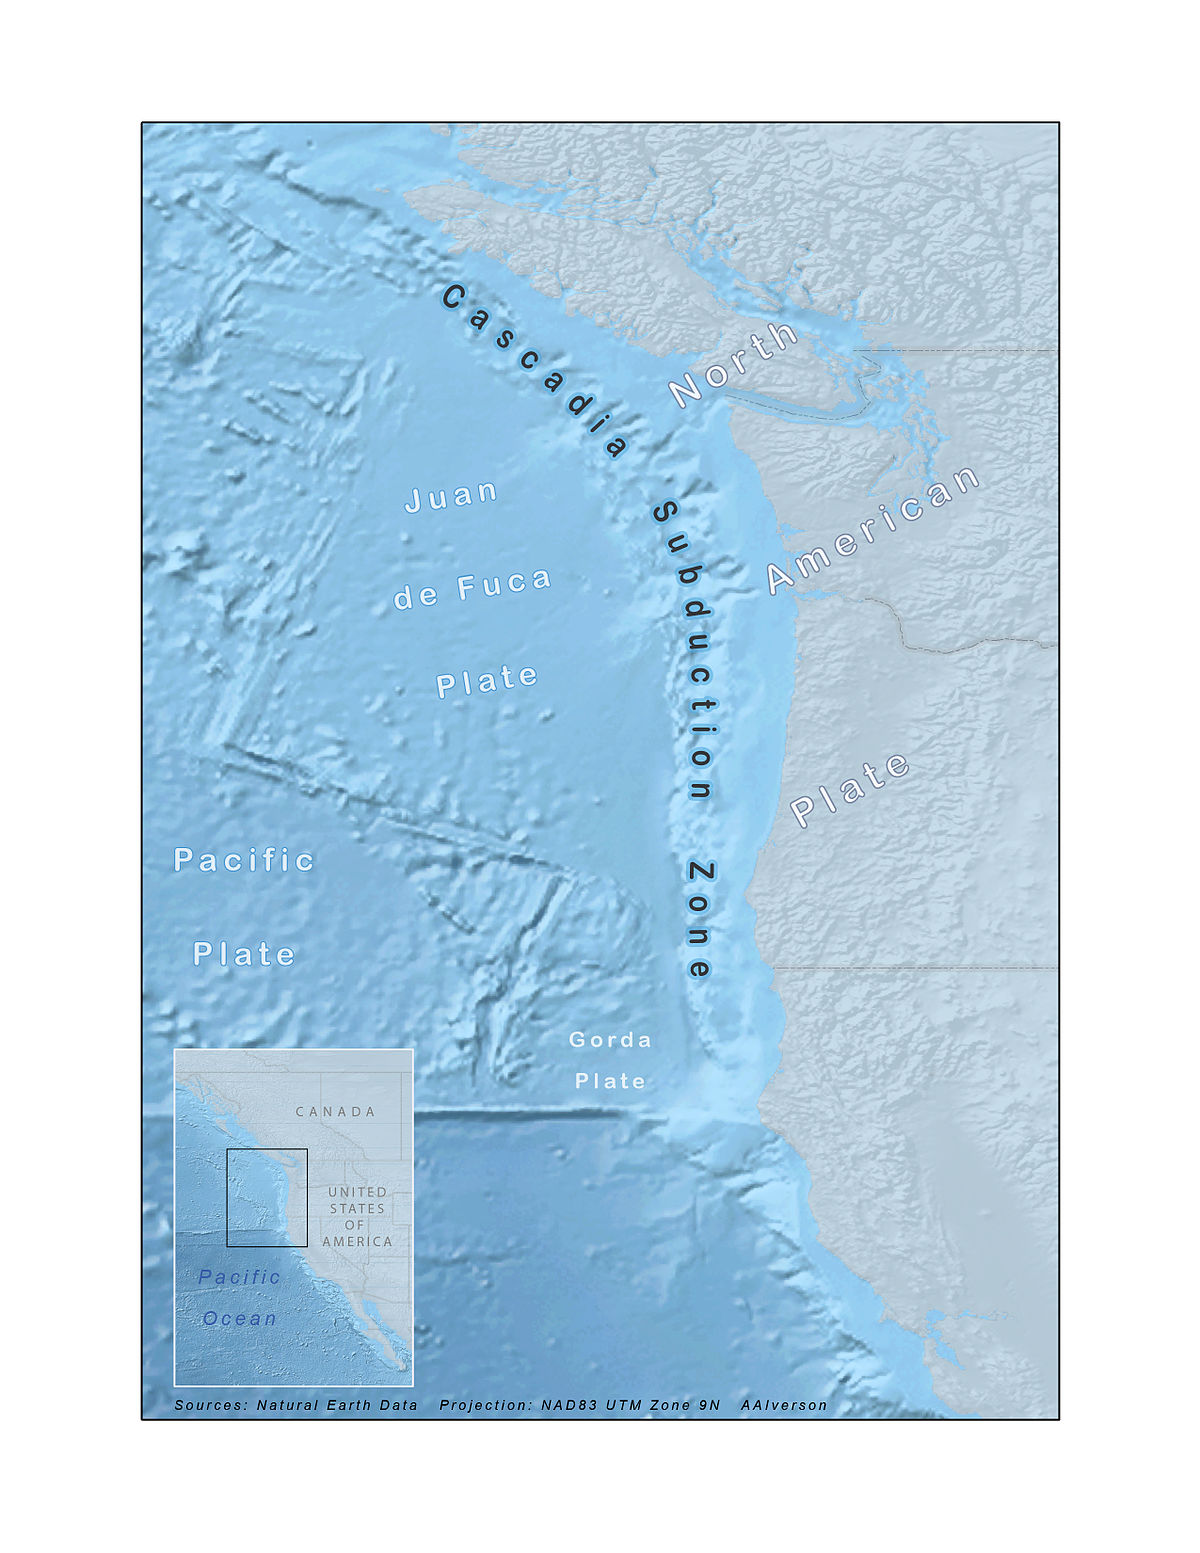 Cascadia Subduction Zone Wikipedia - Map of us fault lines